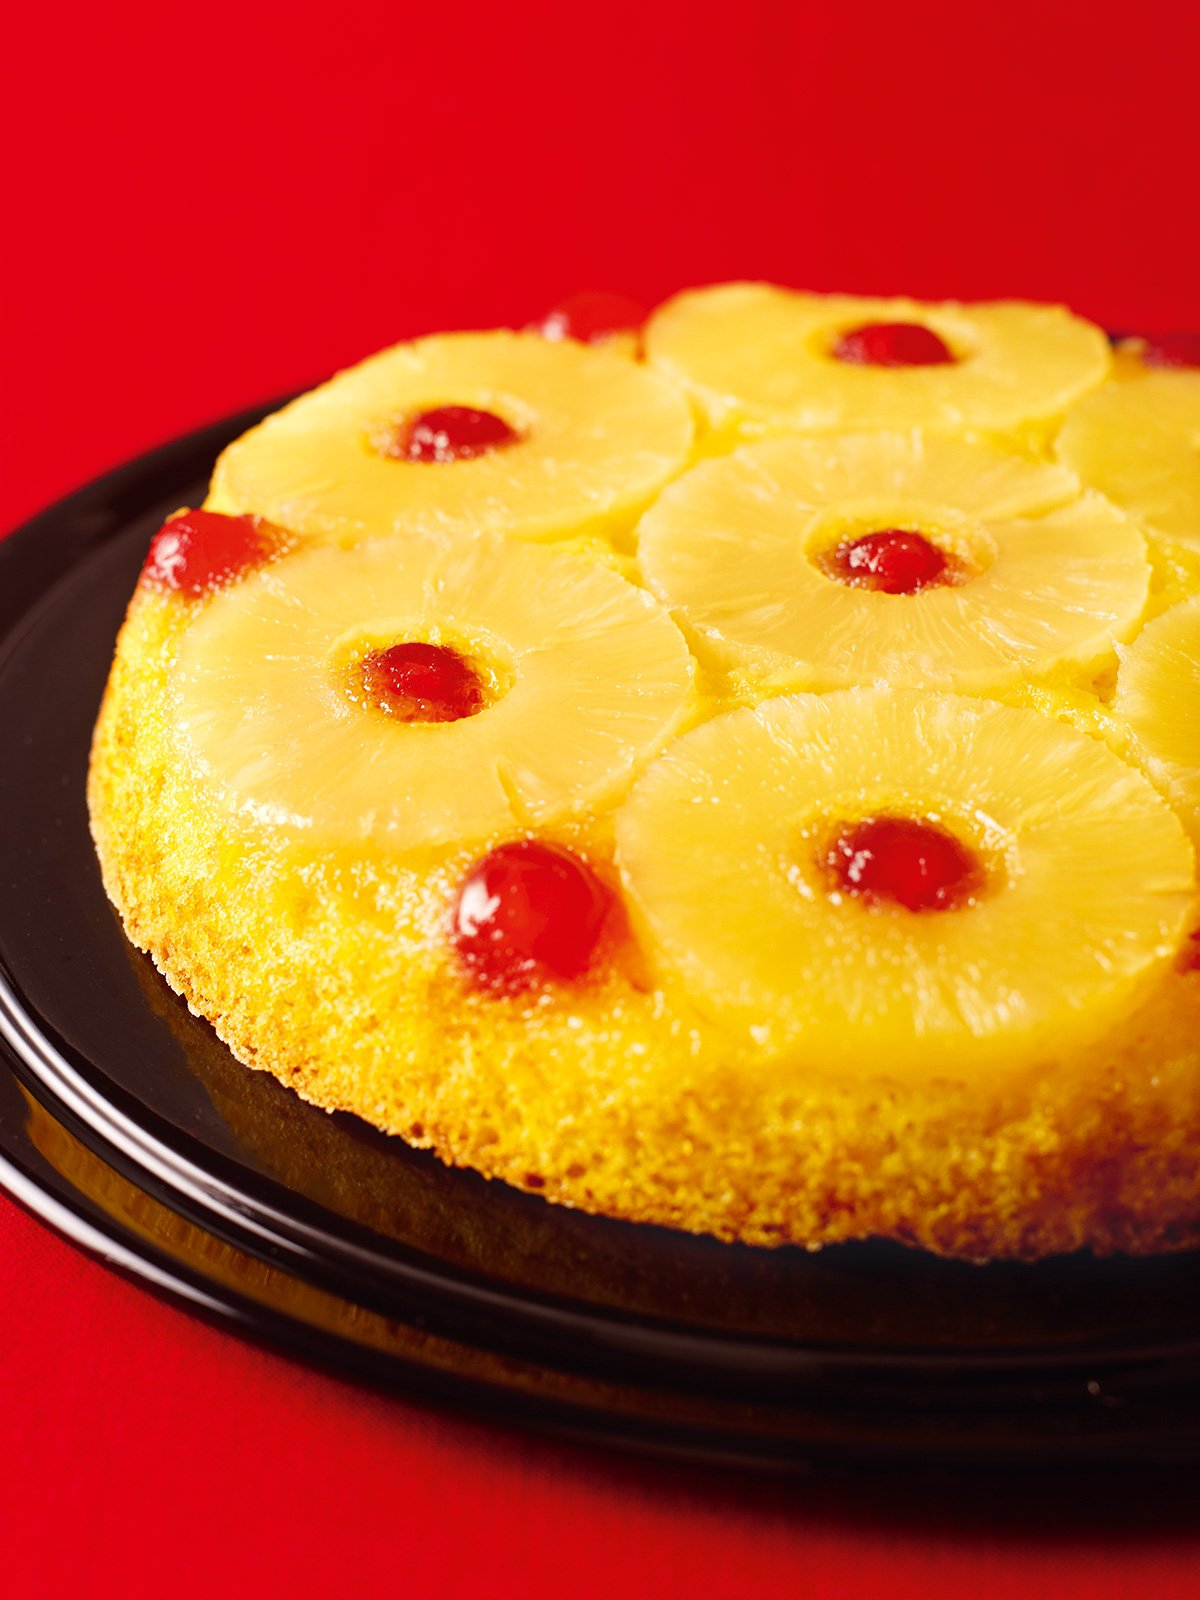 Vegan Upside Down Cake